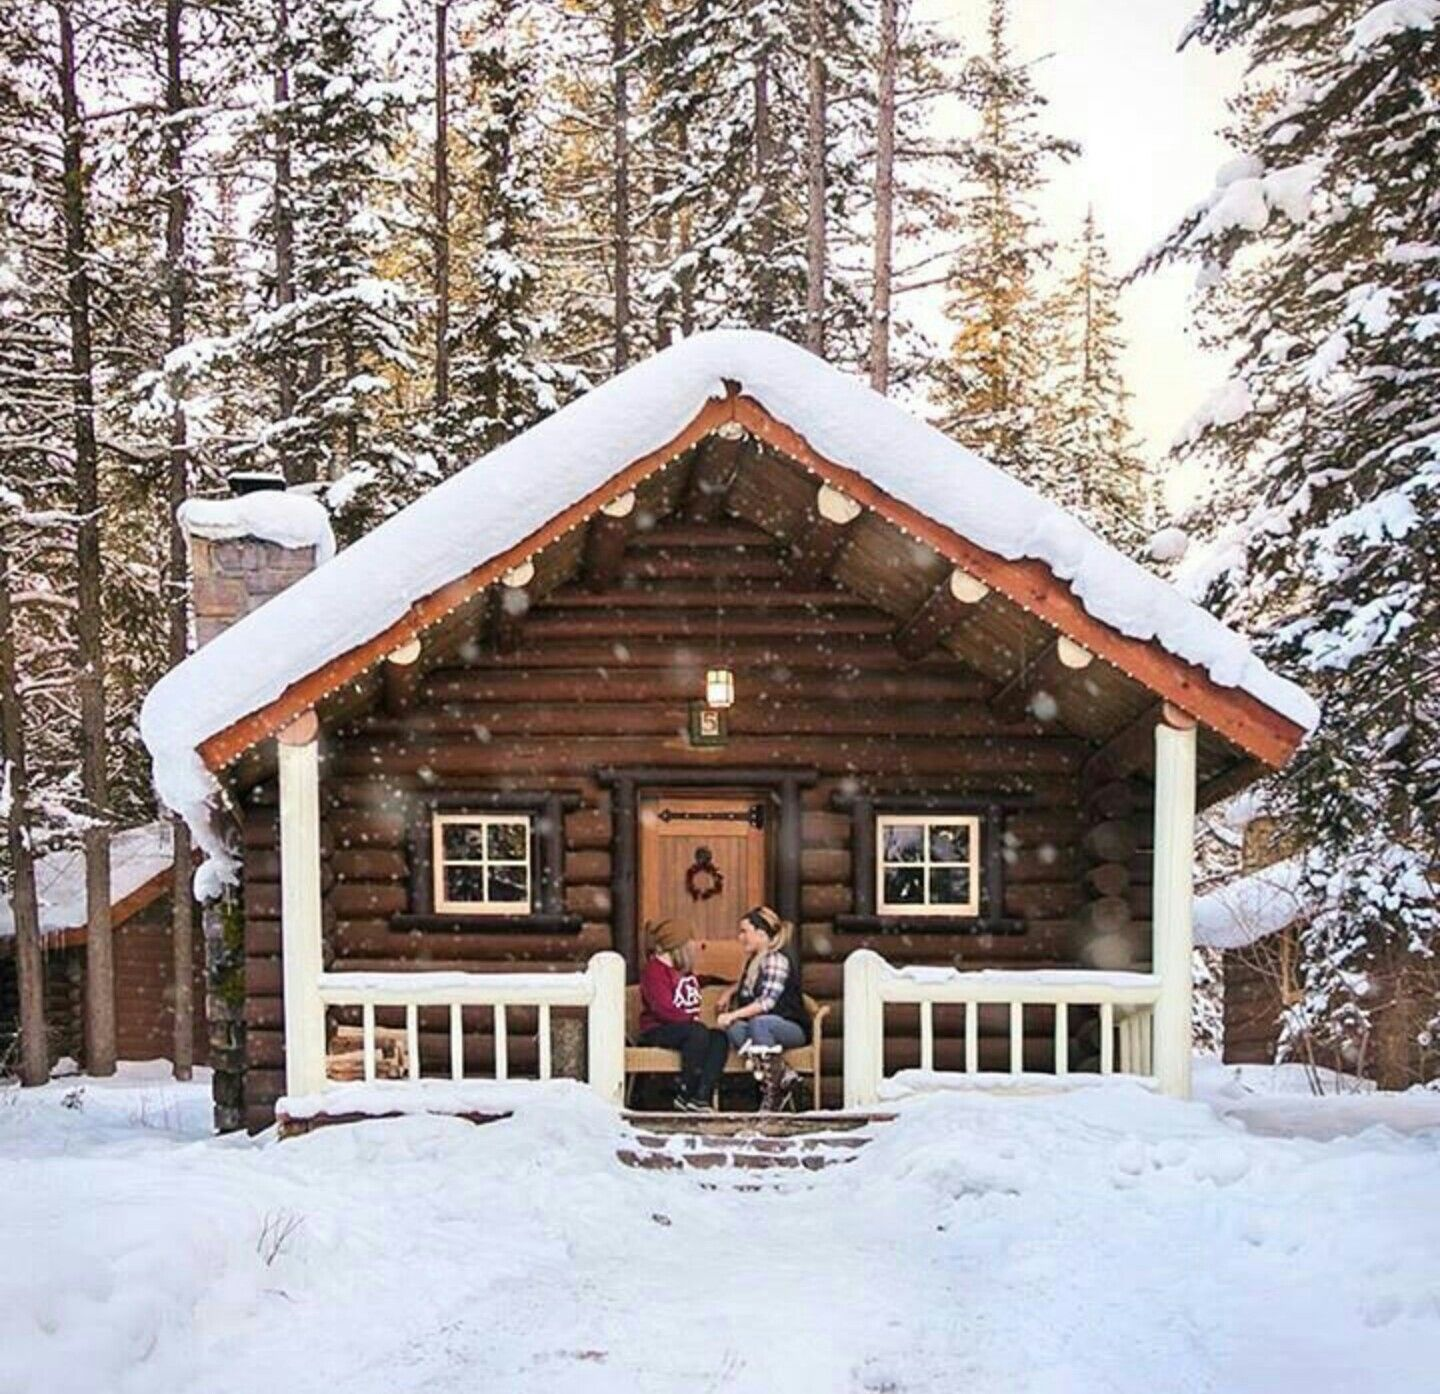 Cozy Winter Home: Pin By Chris Roberts On Cabin In The Woods